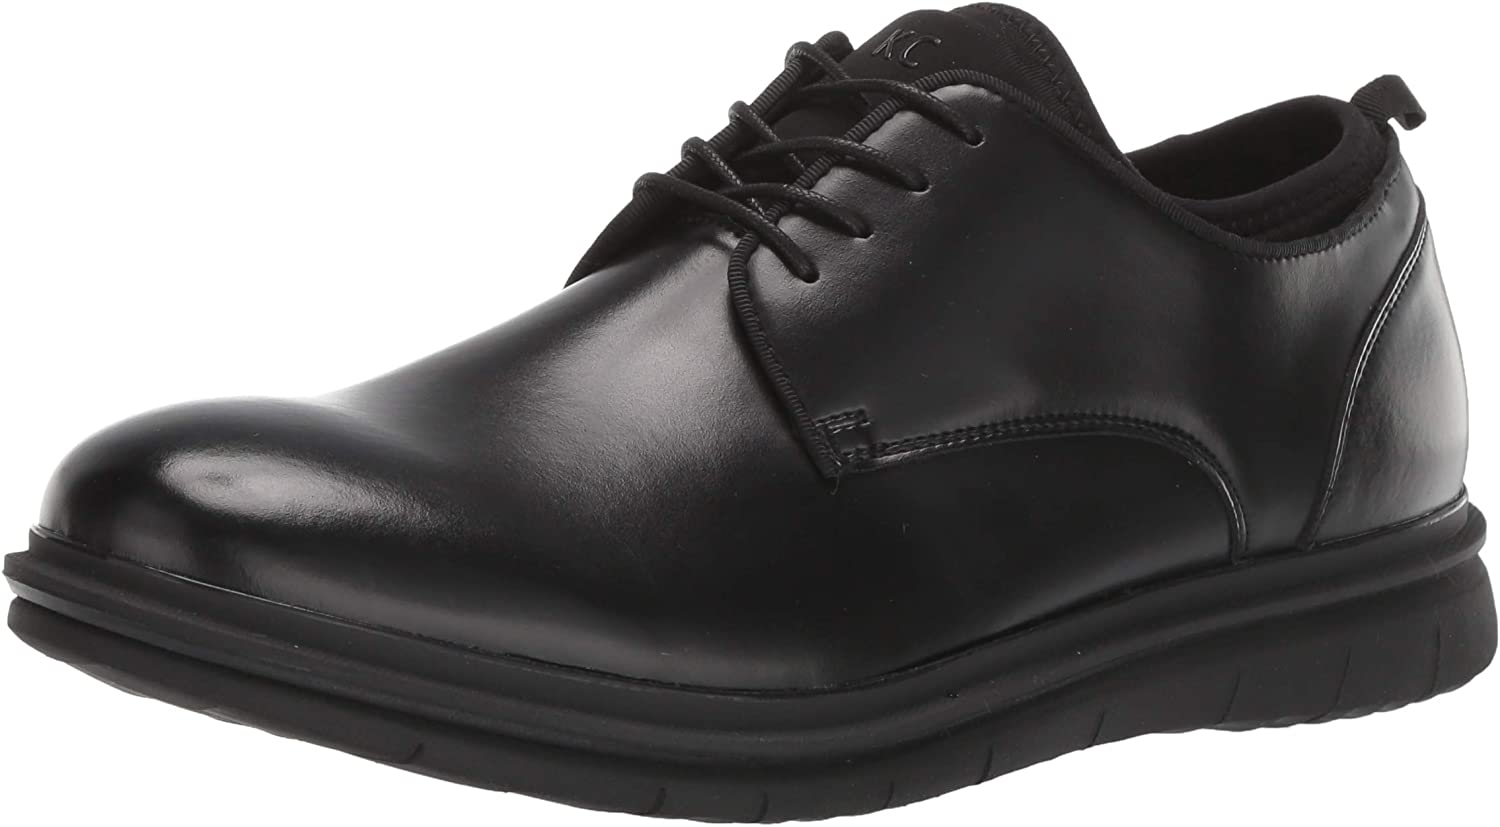 Kenneth Cole REACTION Men's Corey All items free shipping Up Discount mail order Oxford Lace B Flex